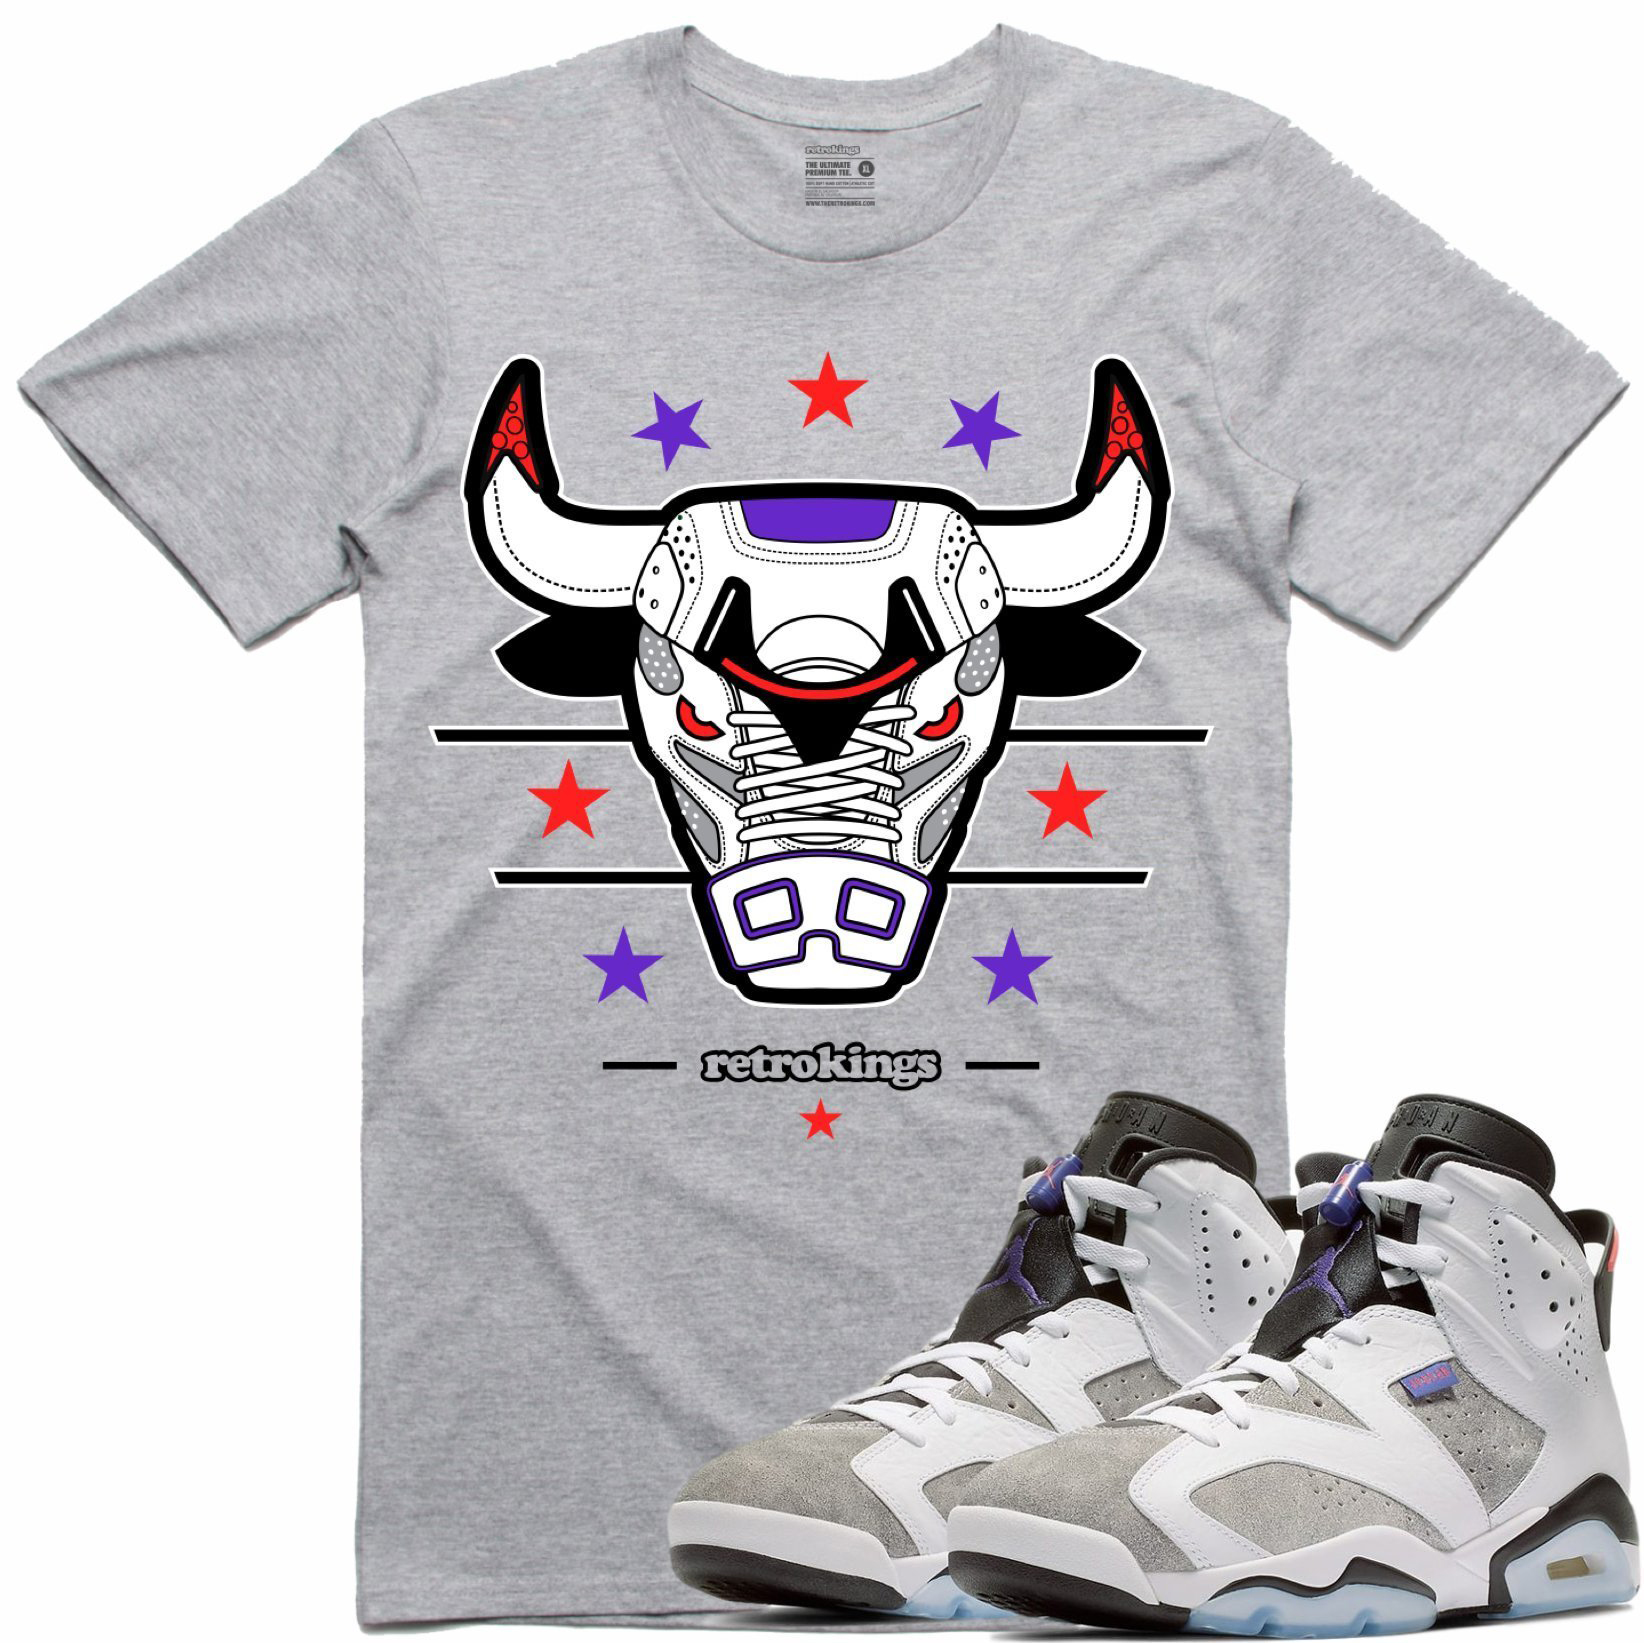 air-jordan-6-flint-grey-sneaker-tee-shirt-retro-kings-3